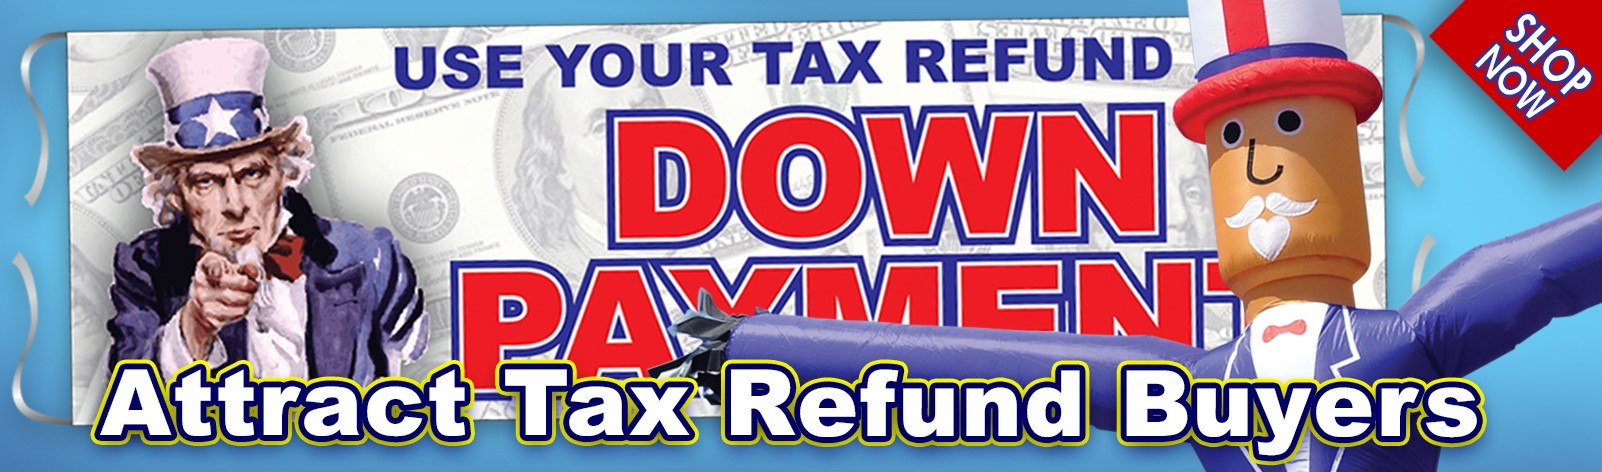 Attract Tax Refund Buyers!